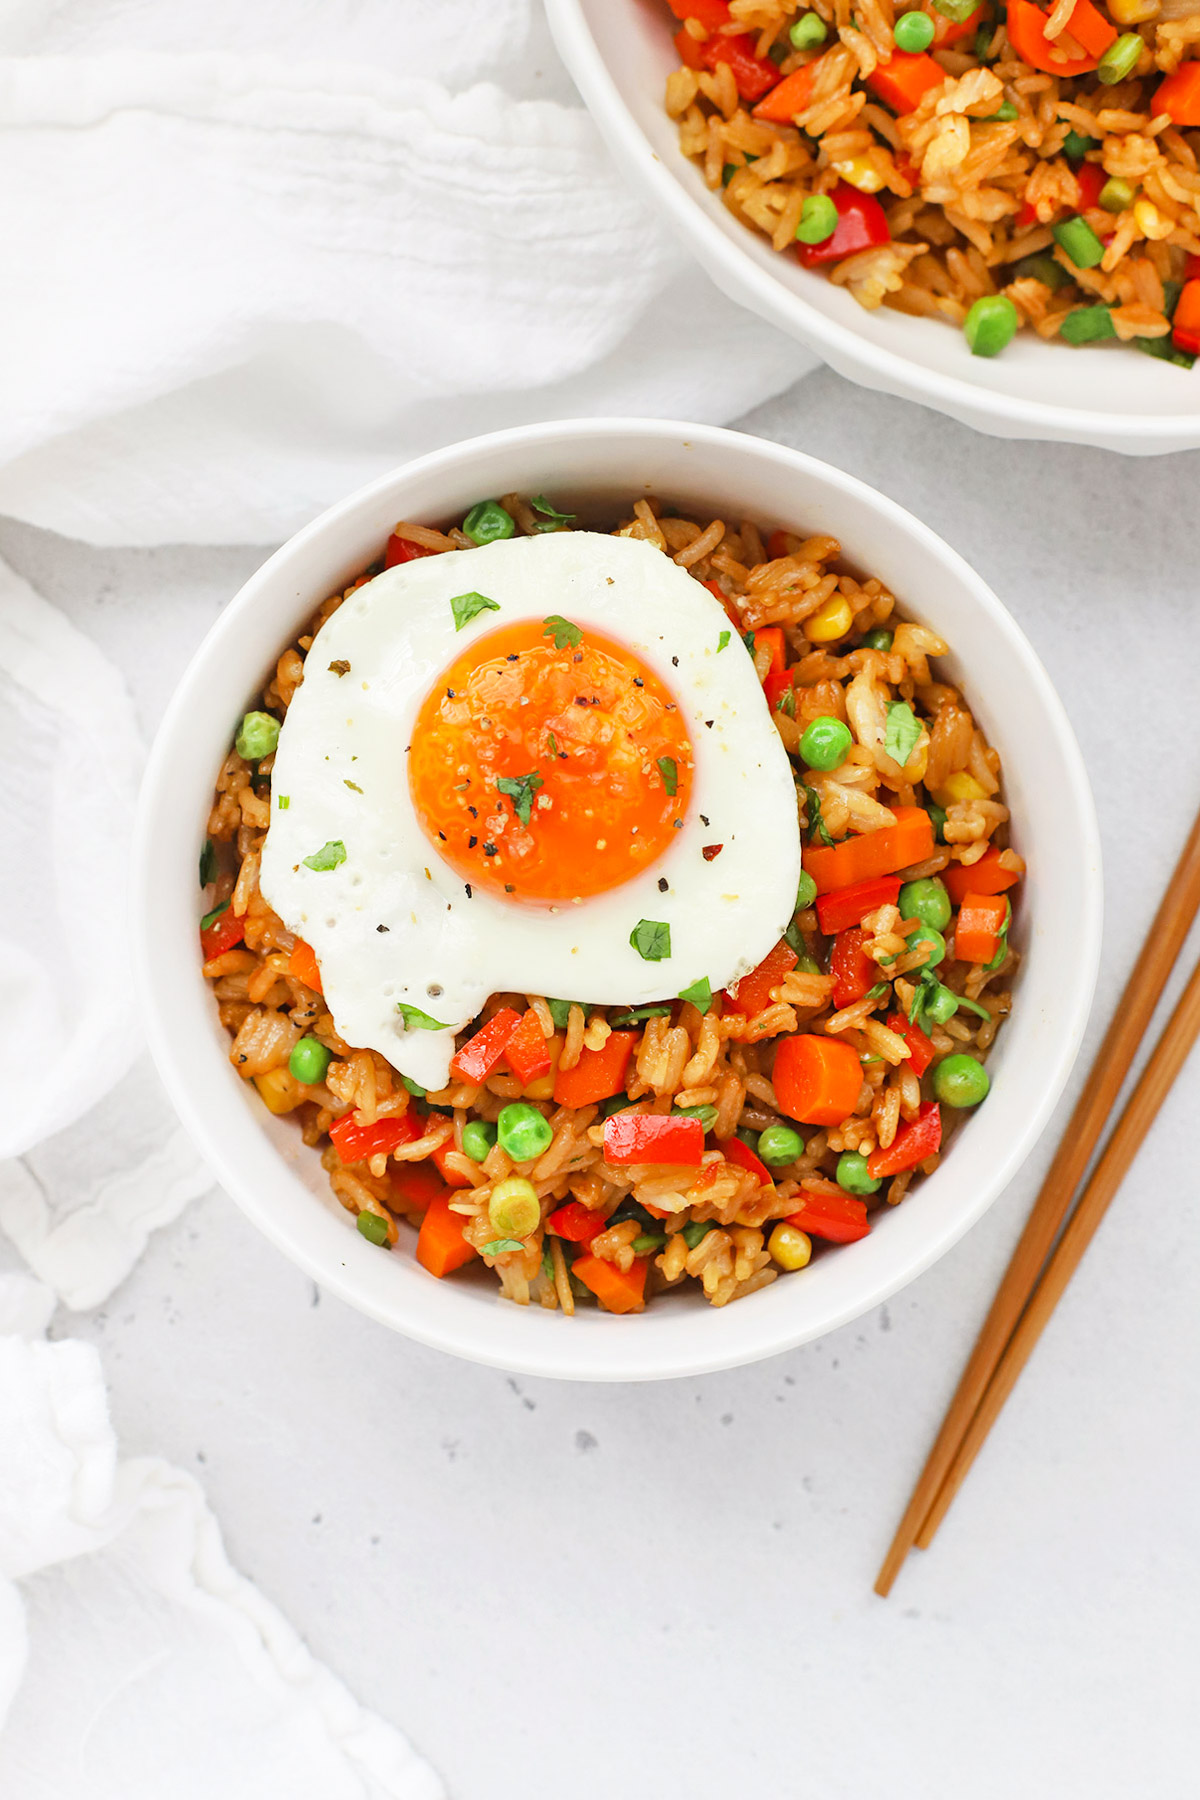 Overhead view of two bowls of healthy vegetarian fried rice topped with a sunny-side up egg